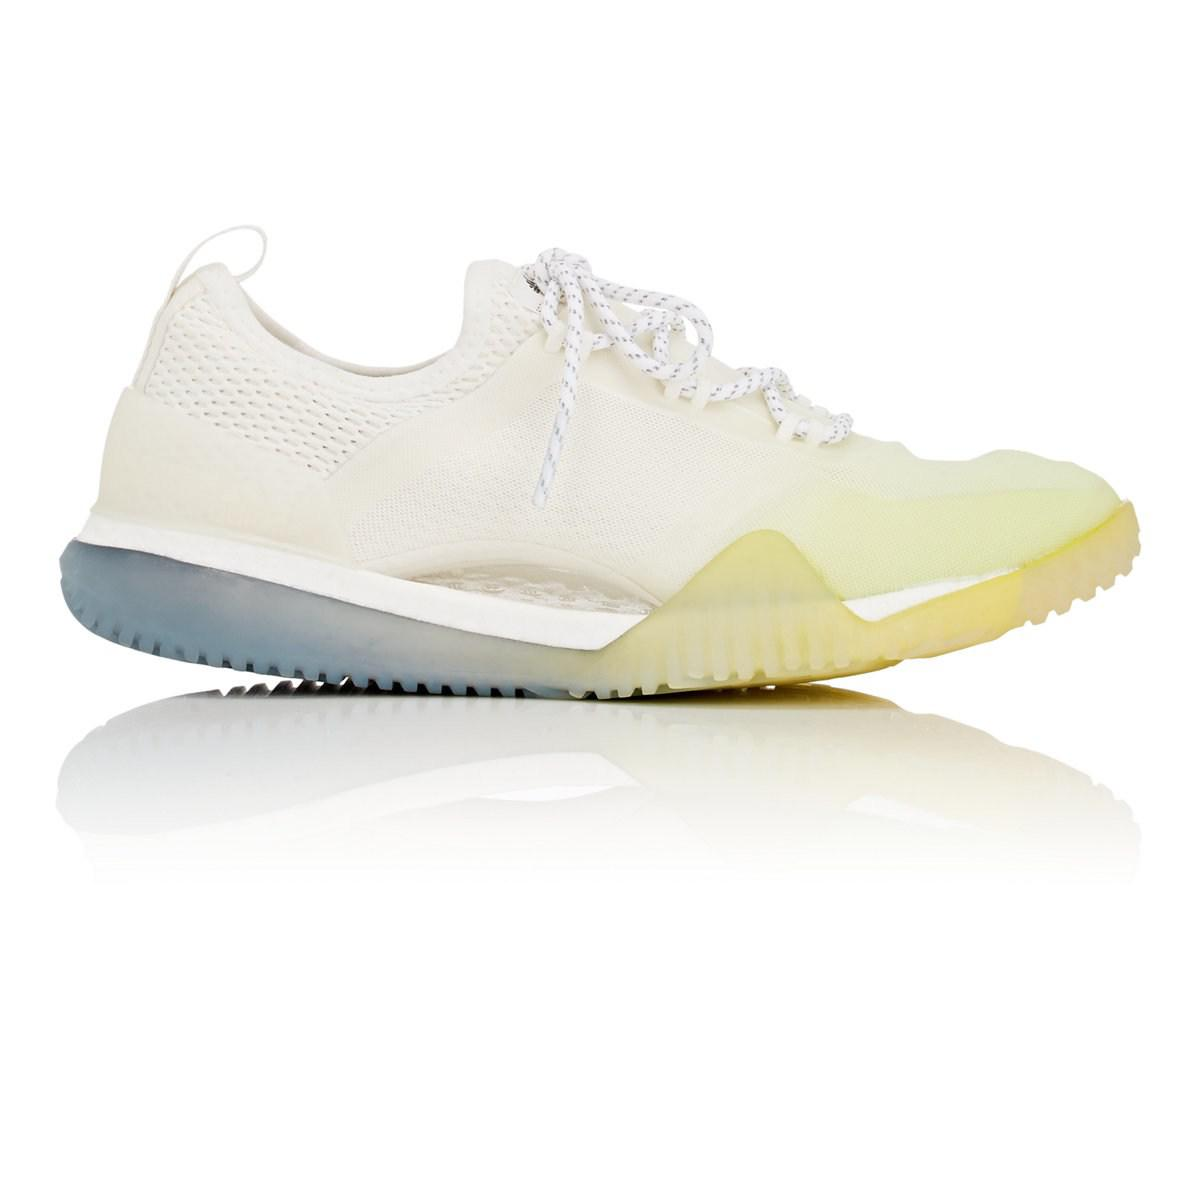 c15f48f9b614c Adidas By Stella McCartney - White Pure Boost X Tr 3.0 Sneakers - Lyst.  View fullscreen